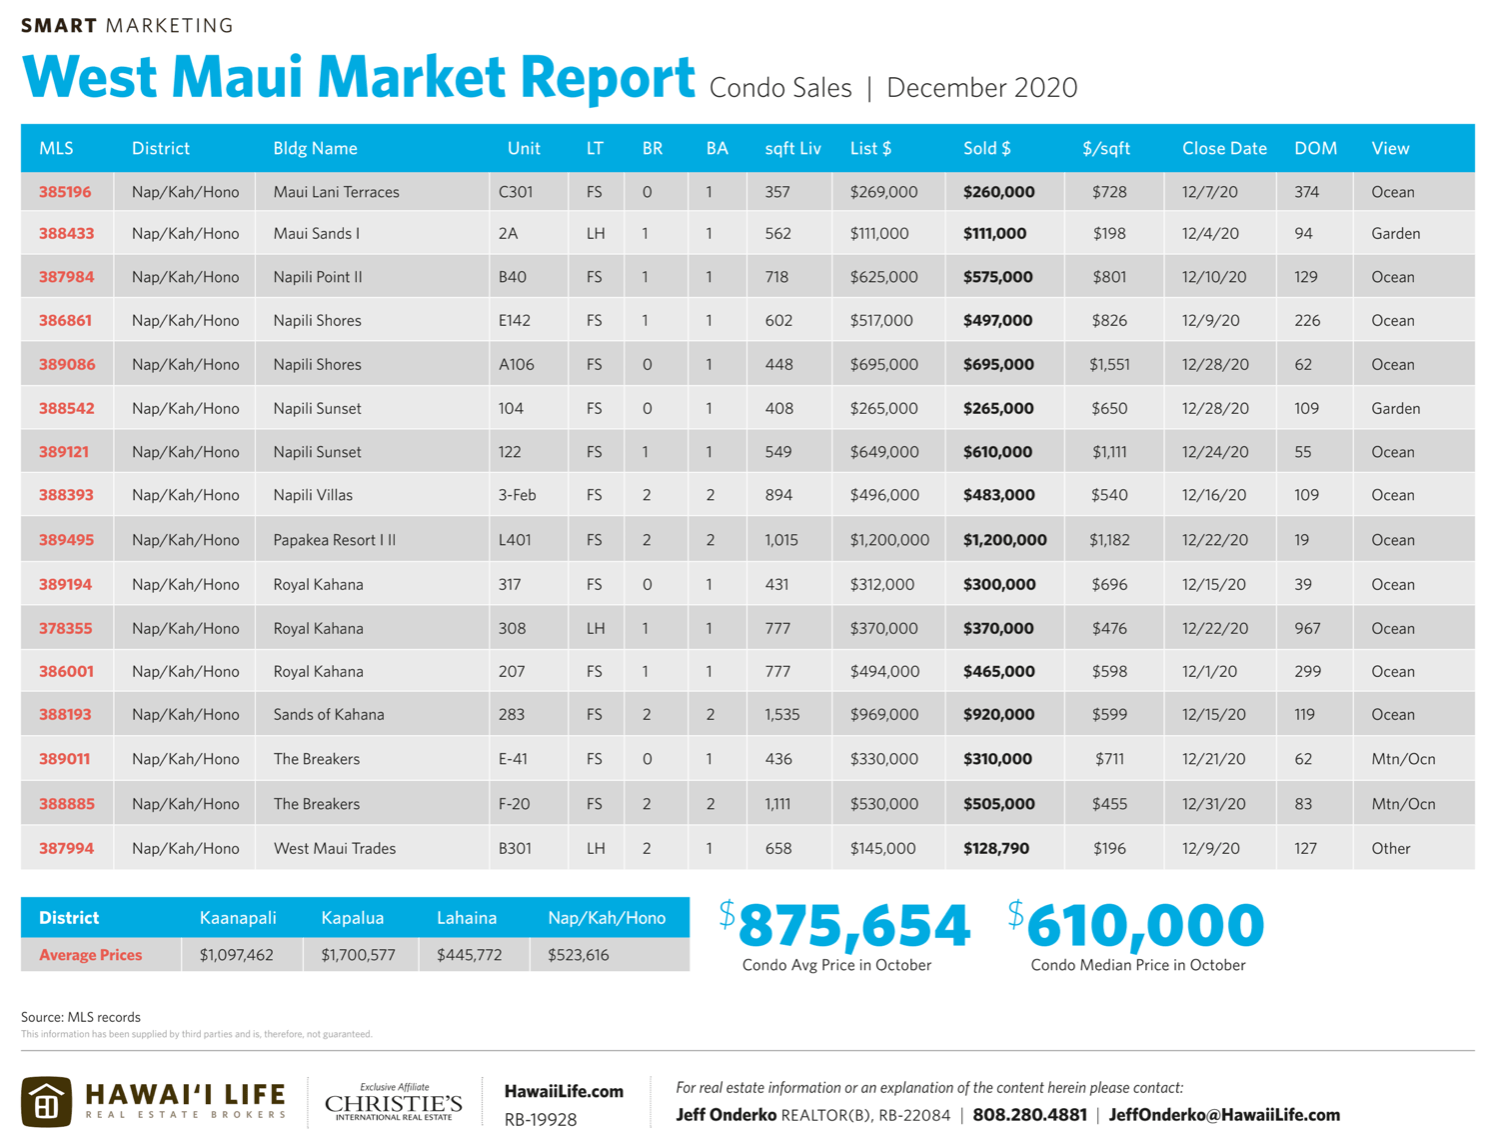 condo sales in west maui december 2020